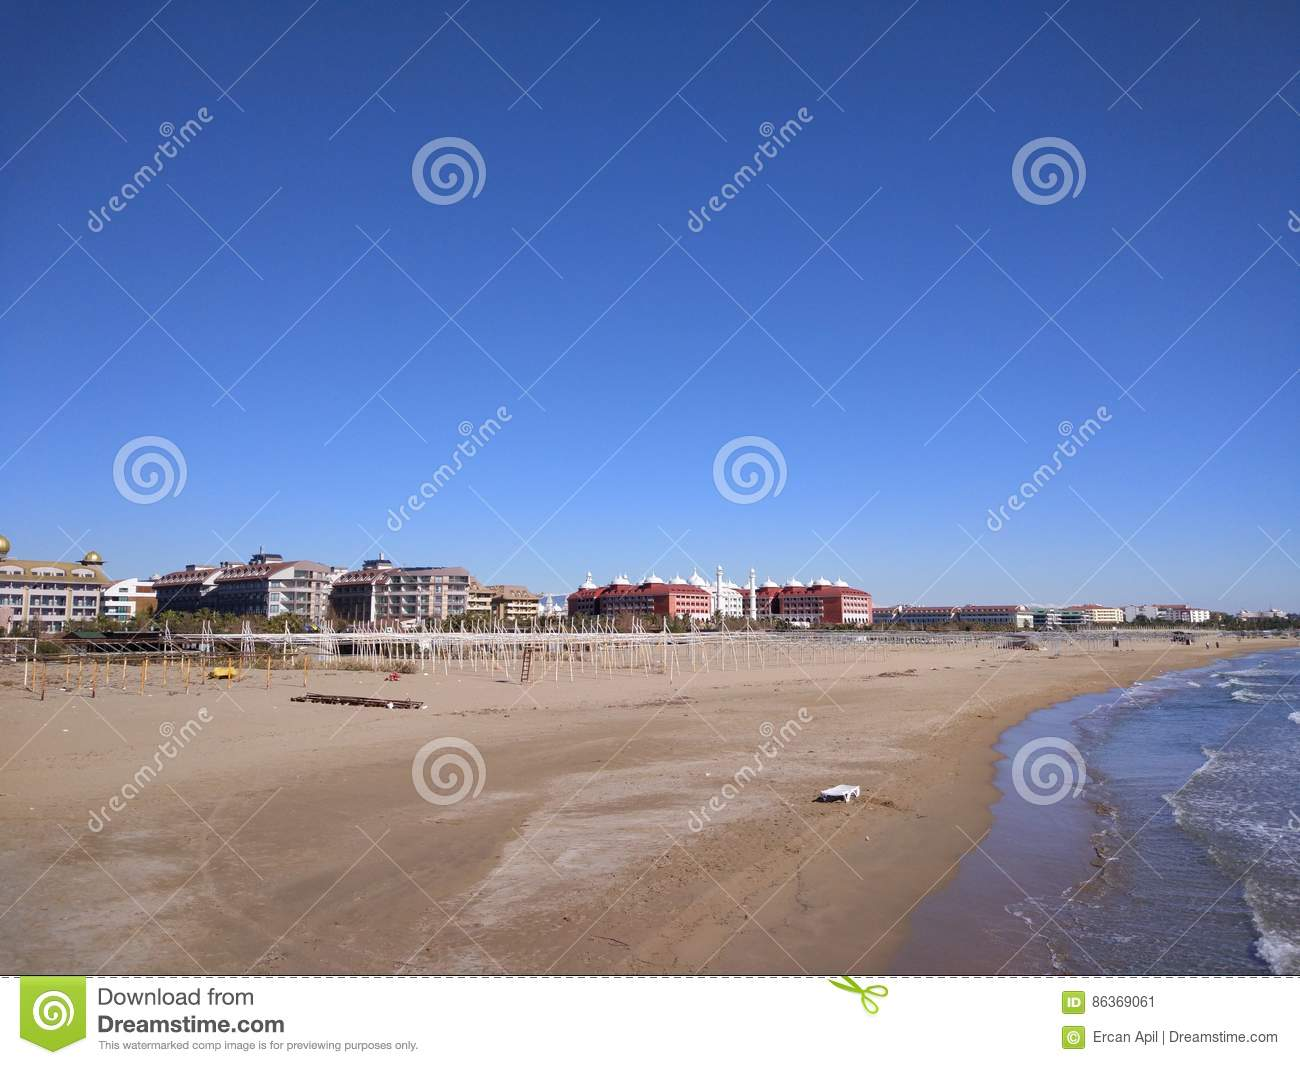 Kumköy Side Antalya Kumköy Strand Stock Image Image Of Cloud Strand 86369061